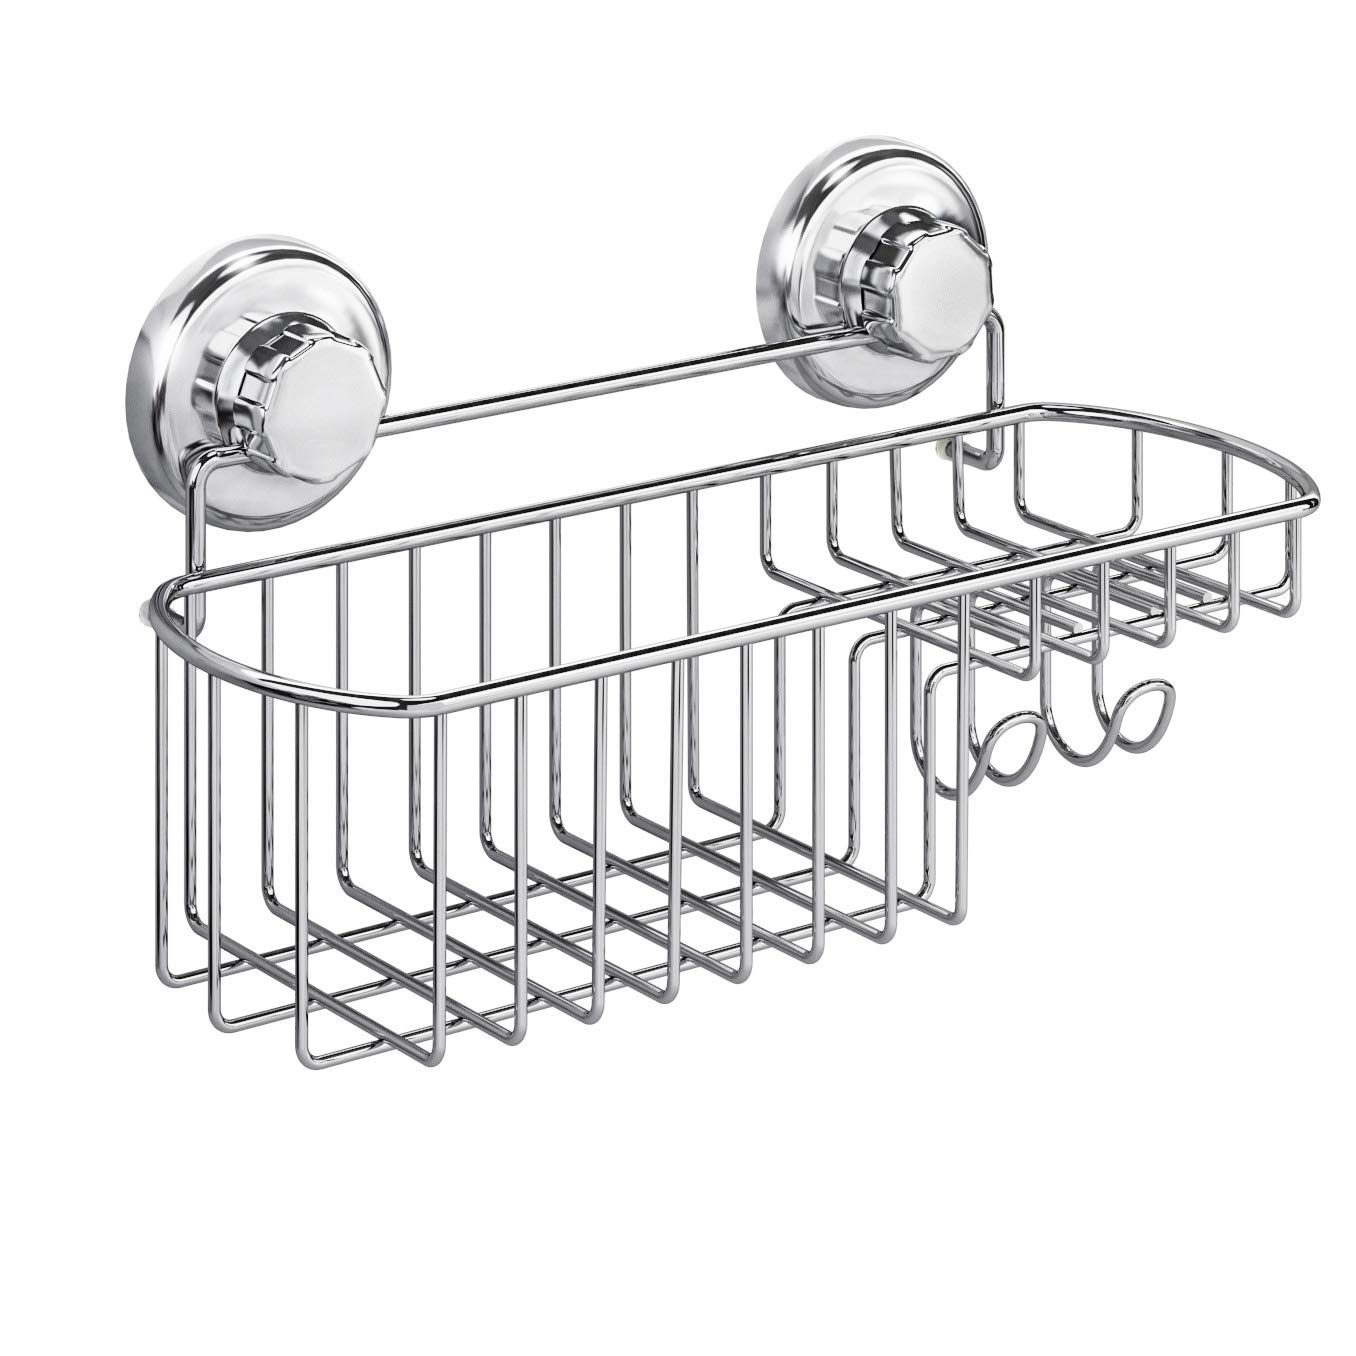 HASKO accessories - Powerful Vacuum Suction Cup Shower Caddy Basket for Shampoo - Combo Organizer Basket with Soap Holder and Hooks - Stainless Steel Holder for Bathroom Storage (Chrome)